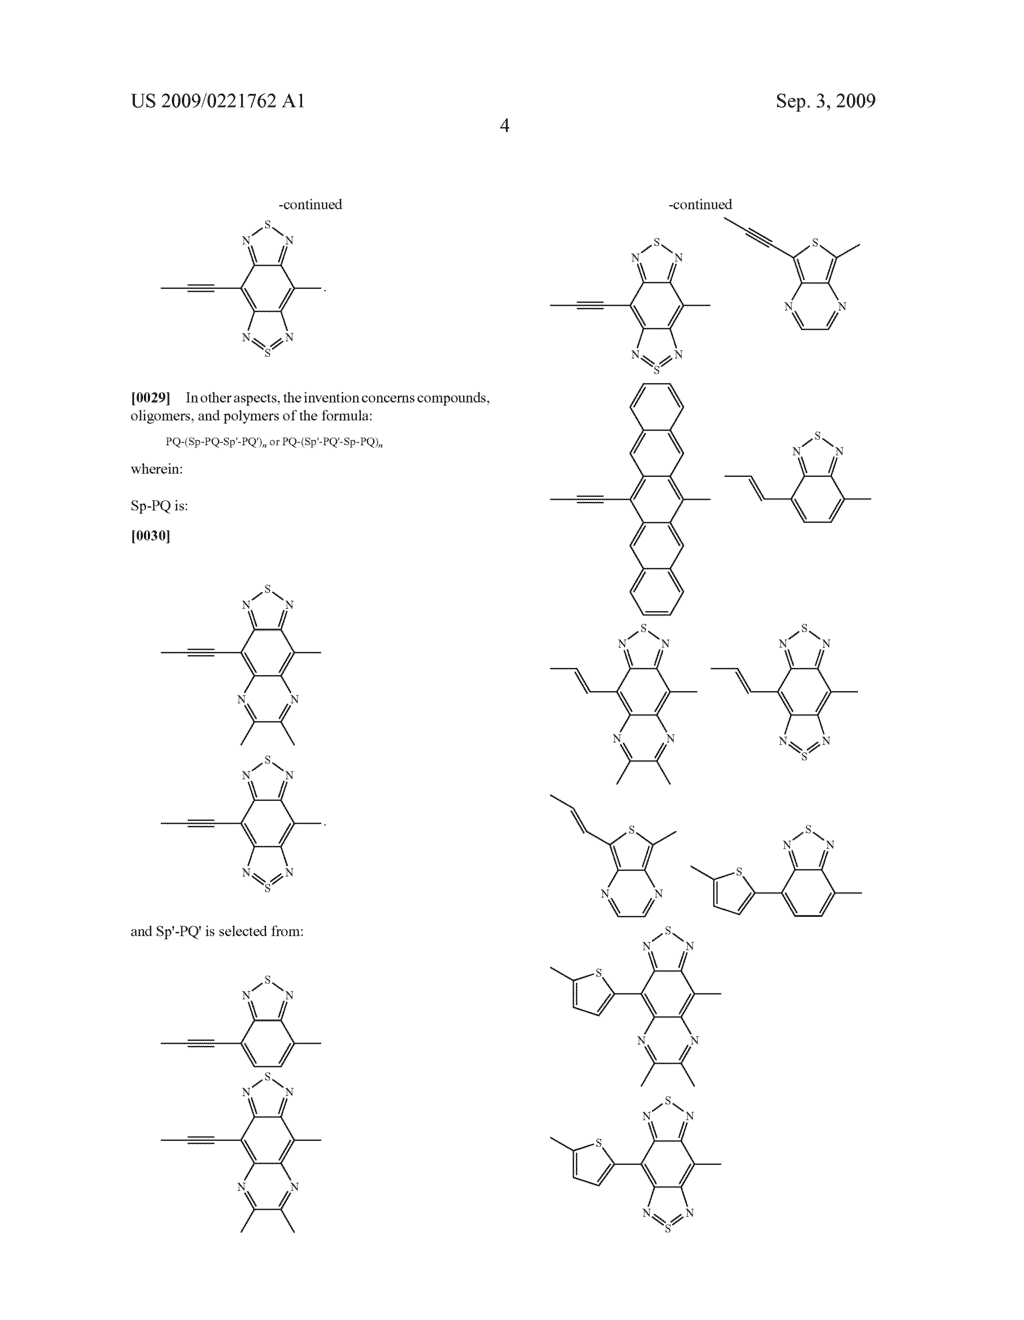 NOVEL CONJUGATED MATERIALS FEATURING PROQUINOIDAL UNITS - diagram, schematic, and image 19